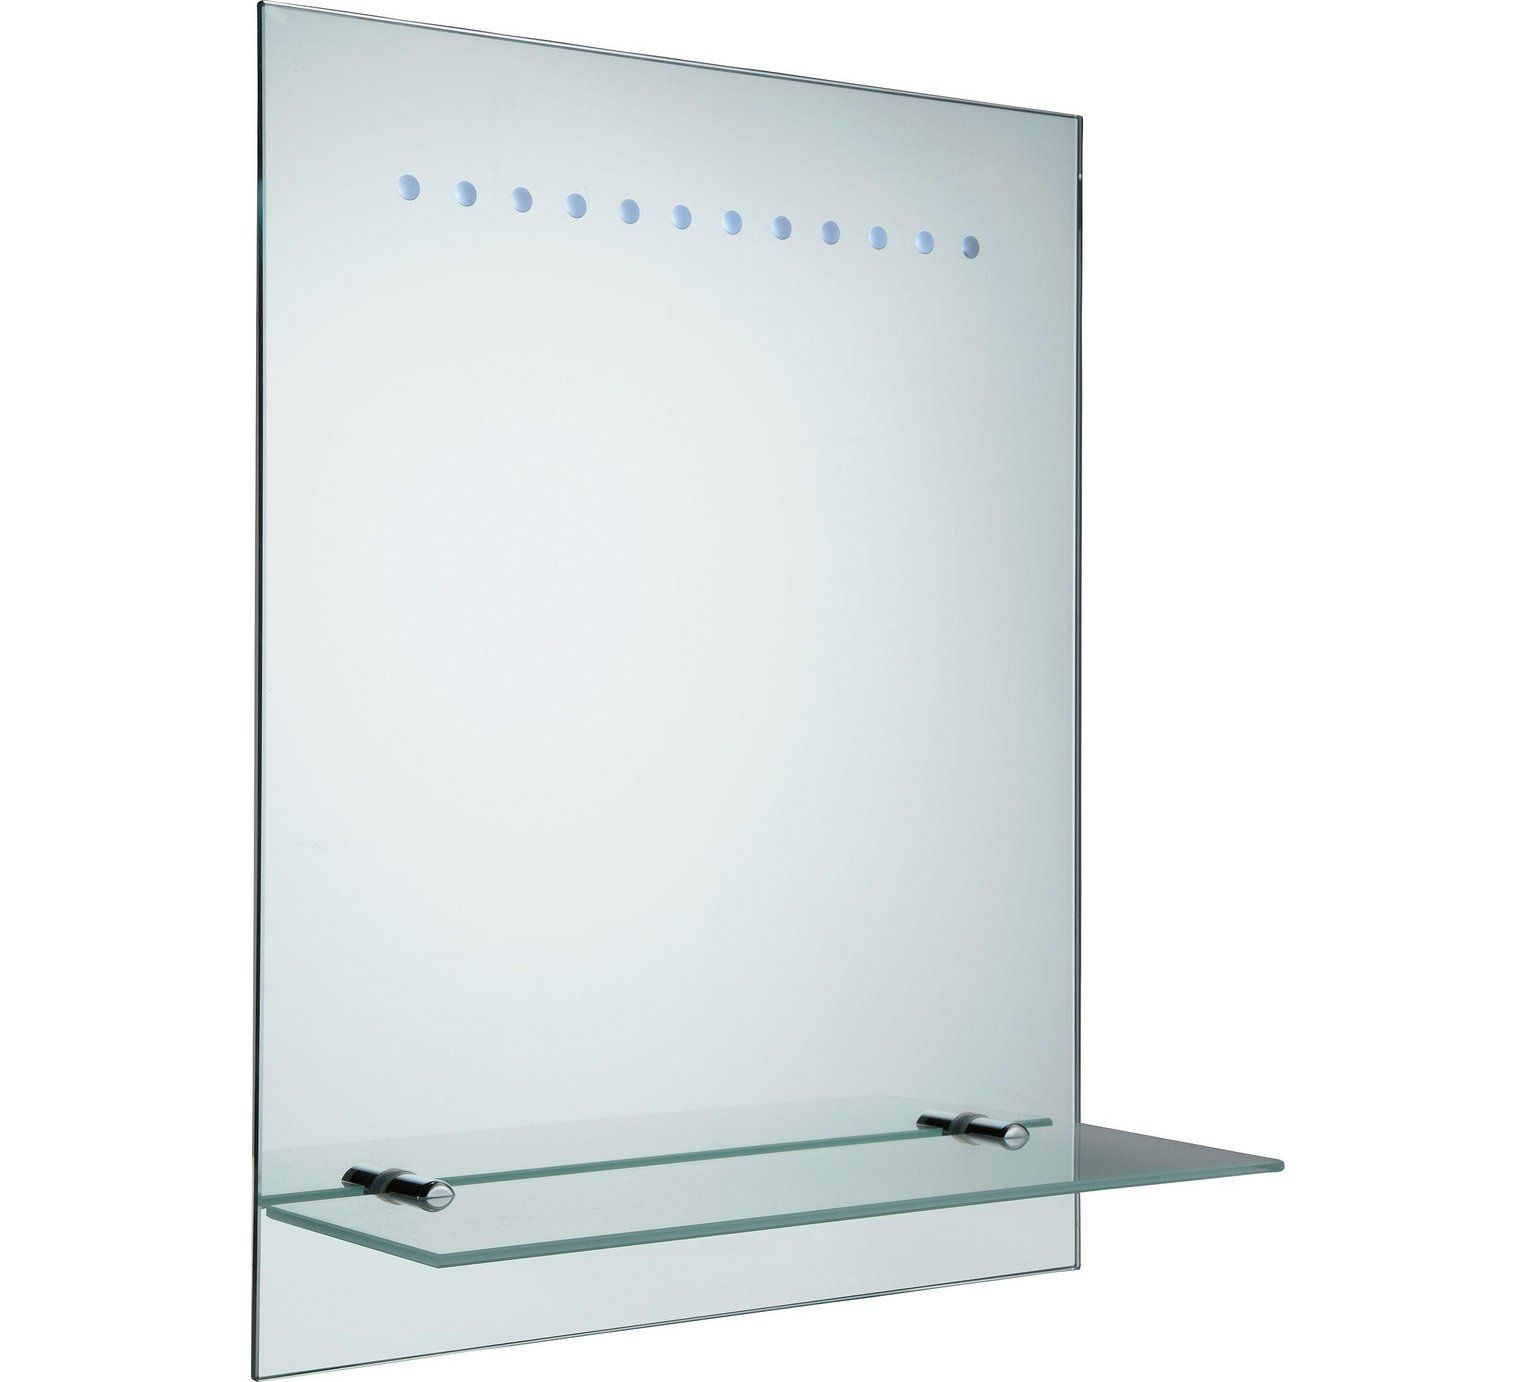 Buy Argos Home Rec Frosted Illuminated Bathroom Mirror Home Furnishings With Images Bathroom Mirror Mirror Argos Home